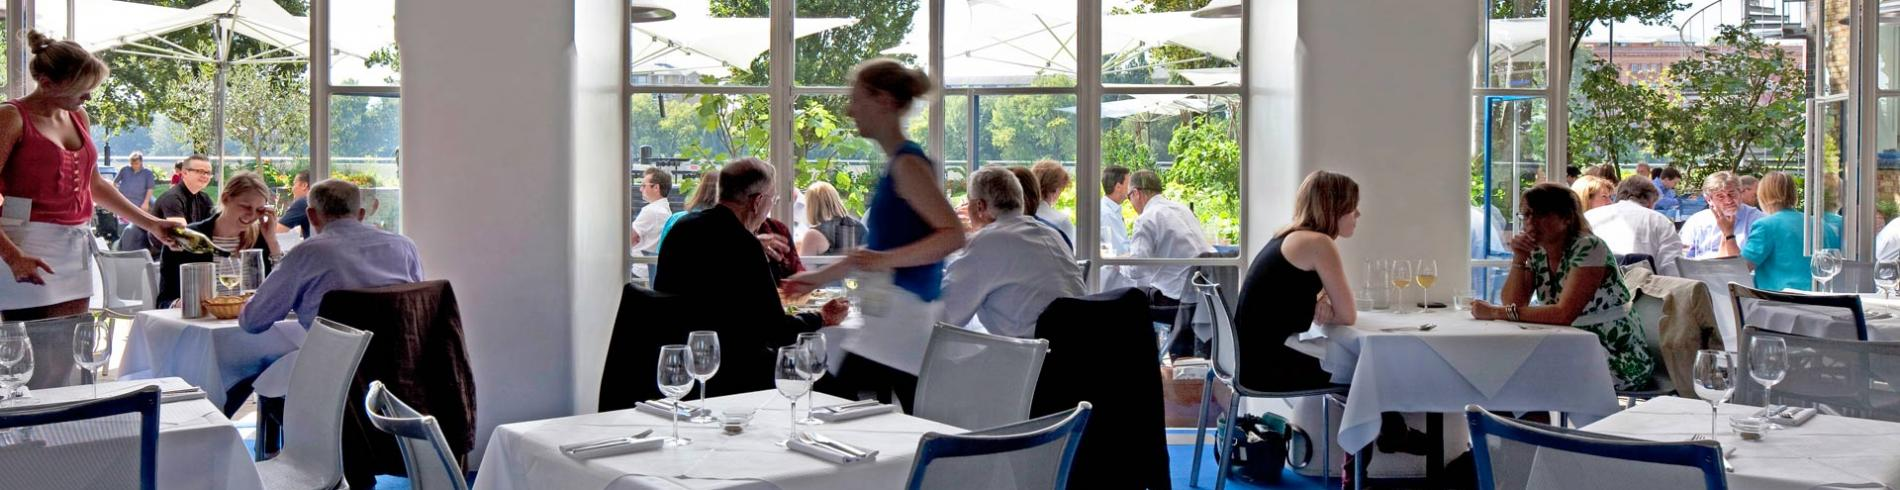 Flawless Italian feasting by the Thames, at the River Café